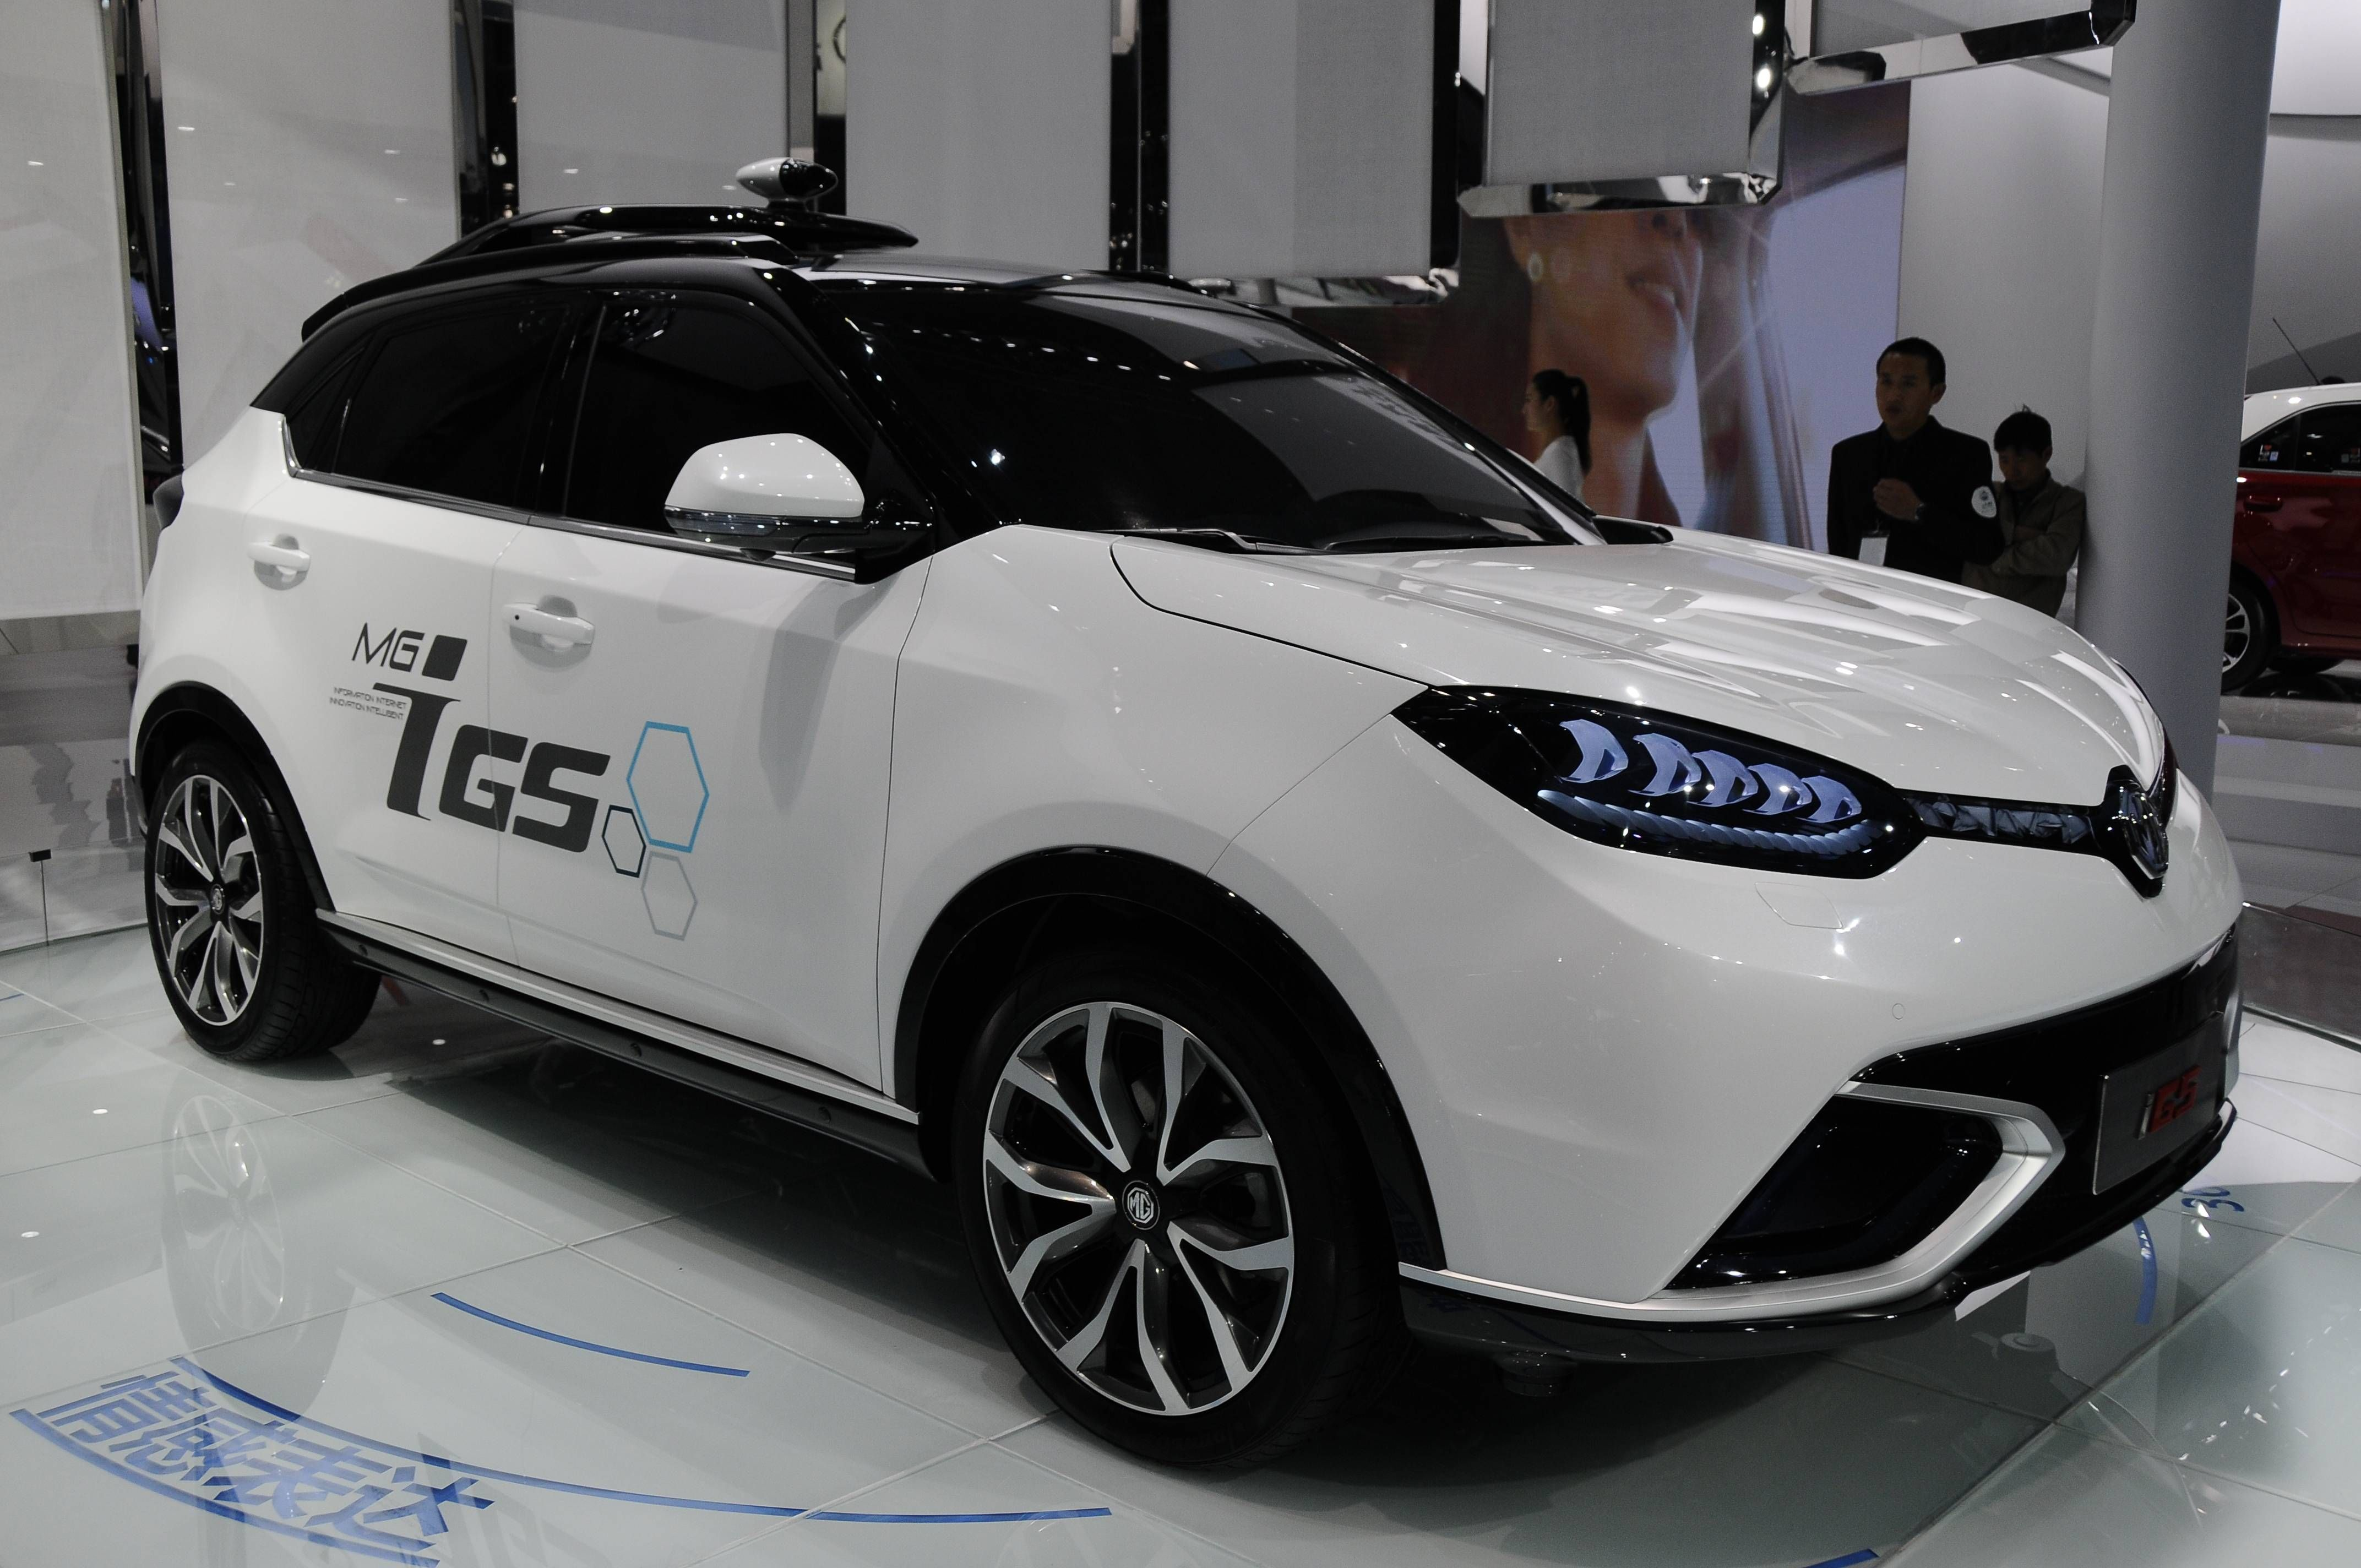 Chinese automakers were also out in force. Shanghai Automotive's MG brand showed off its new compact crossover, the GS.